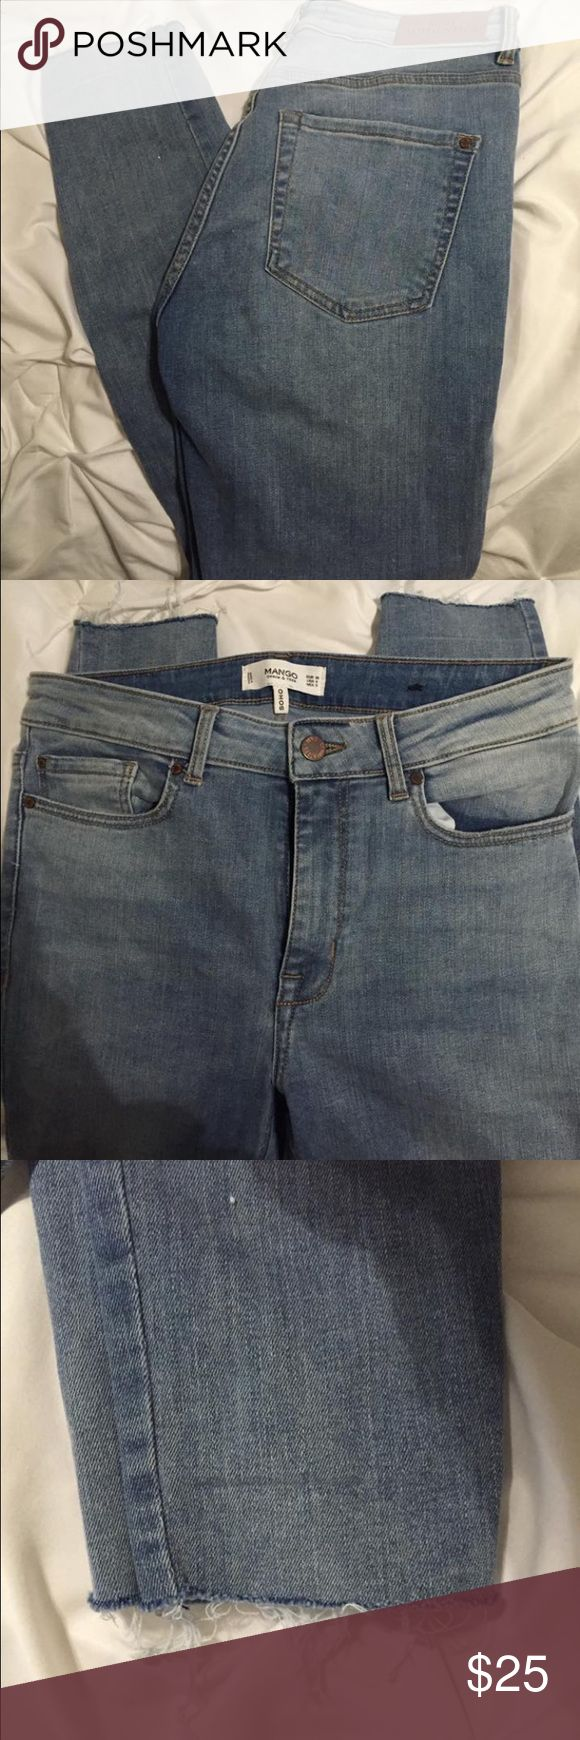 Women's Jeans Light wash, skinny jeans, high-wasted, new never worn, bought in Italy, stretchy, frayed bottom Mango Pants Skinny